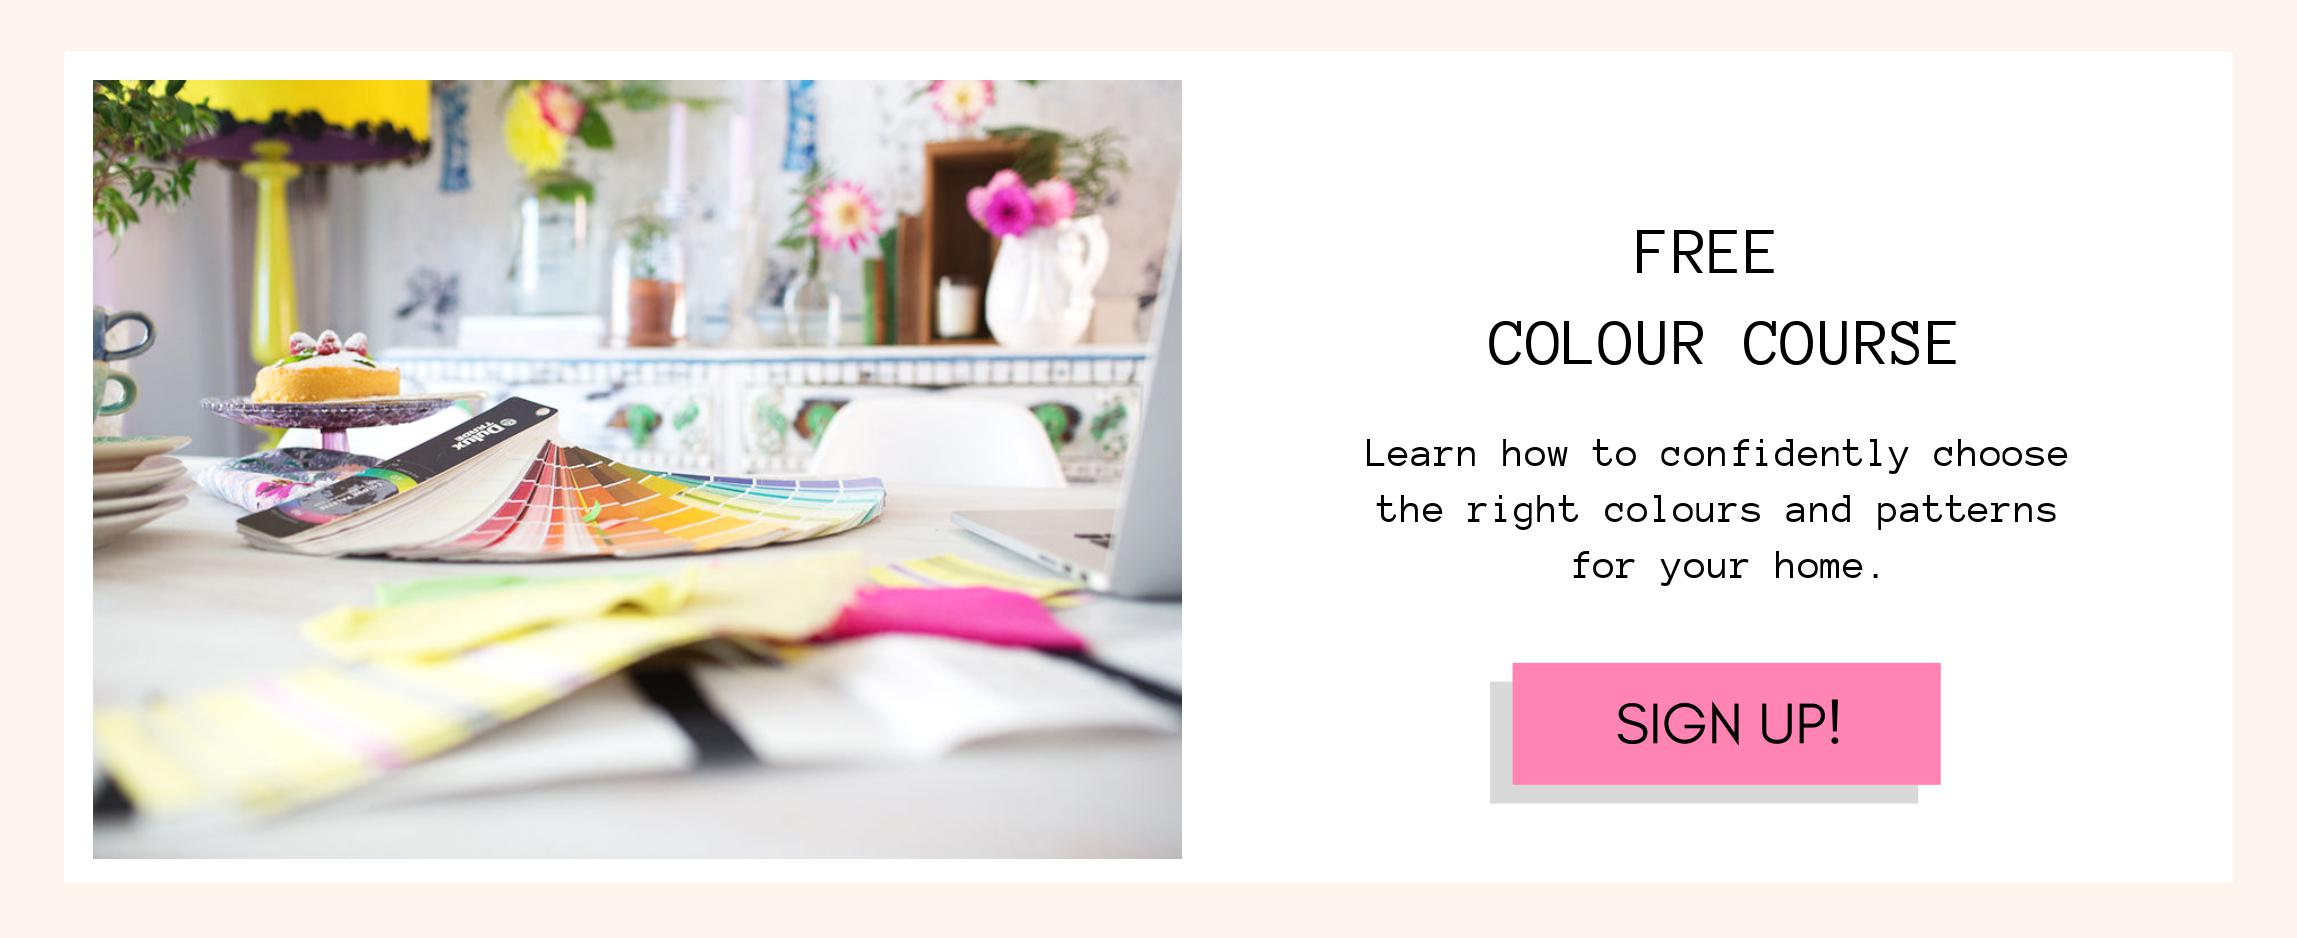 Free colour course for home decorating.